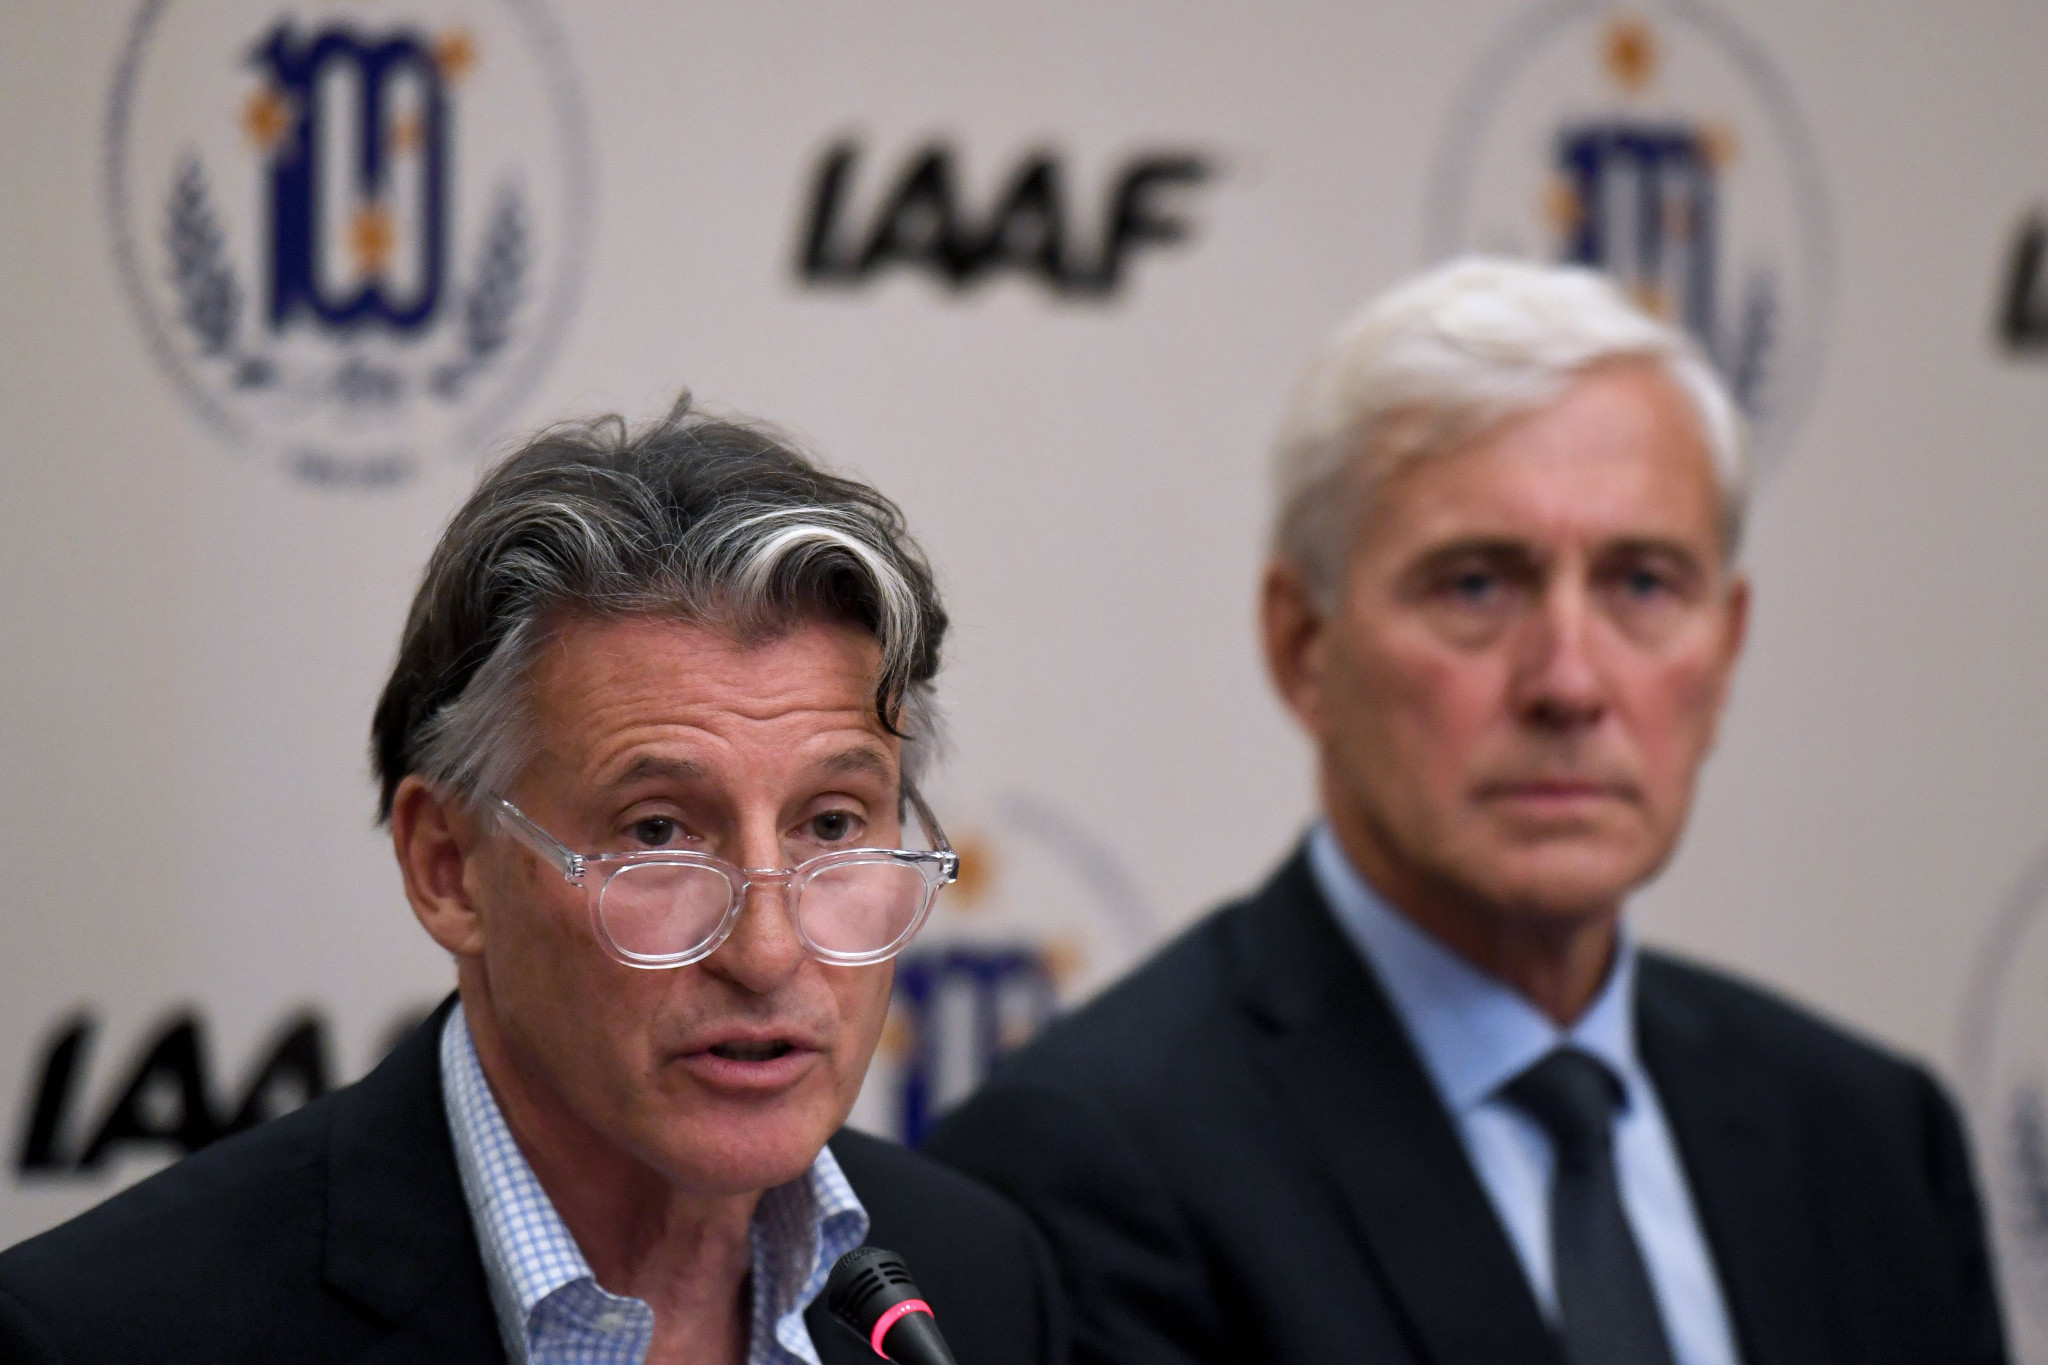 IAAF President Sebastian Coe, left, said they will stick to the conditions given to Russia and overseen by its Taskforce headed by Norwegian Rune Andersen, right ©Getty Images